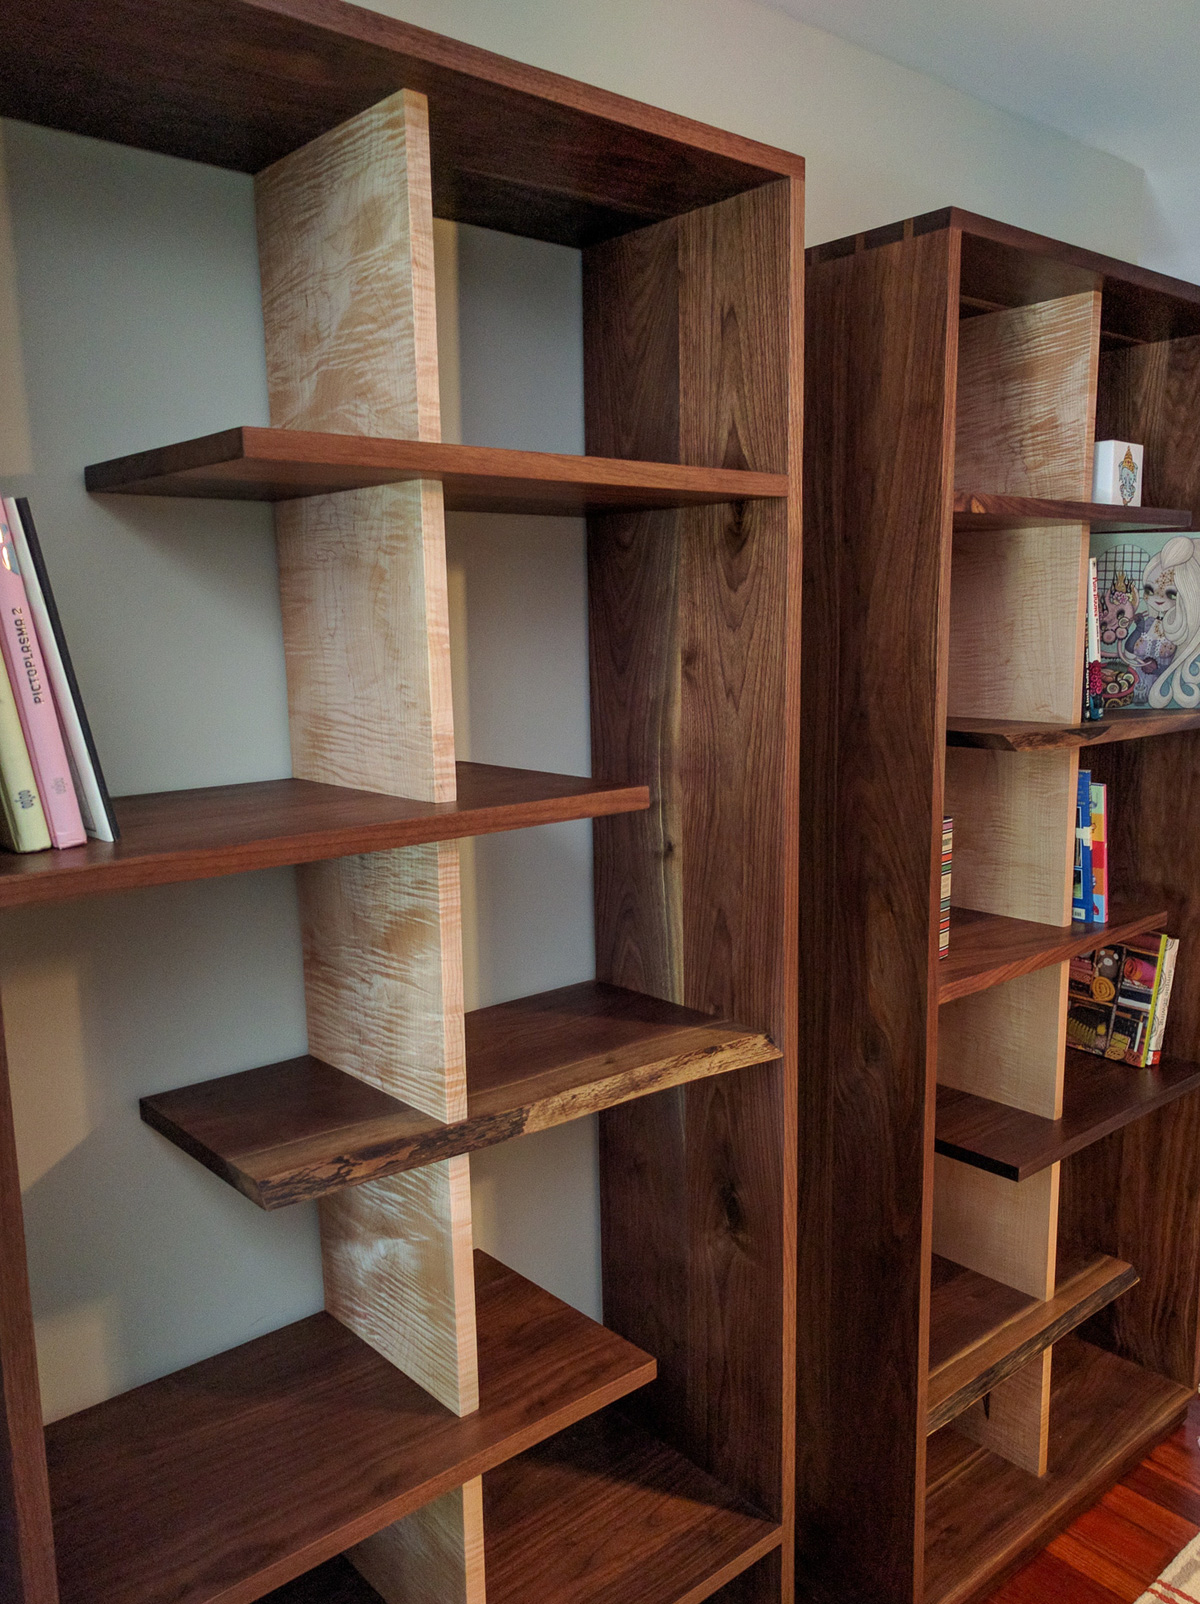 Dovetail walnut case with a live edge shelves incorporated and curly maple dividers.